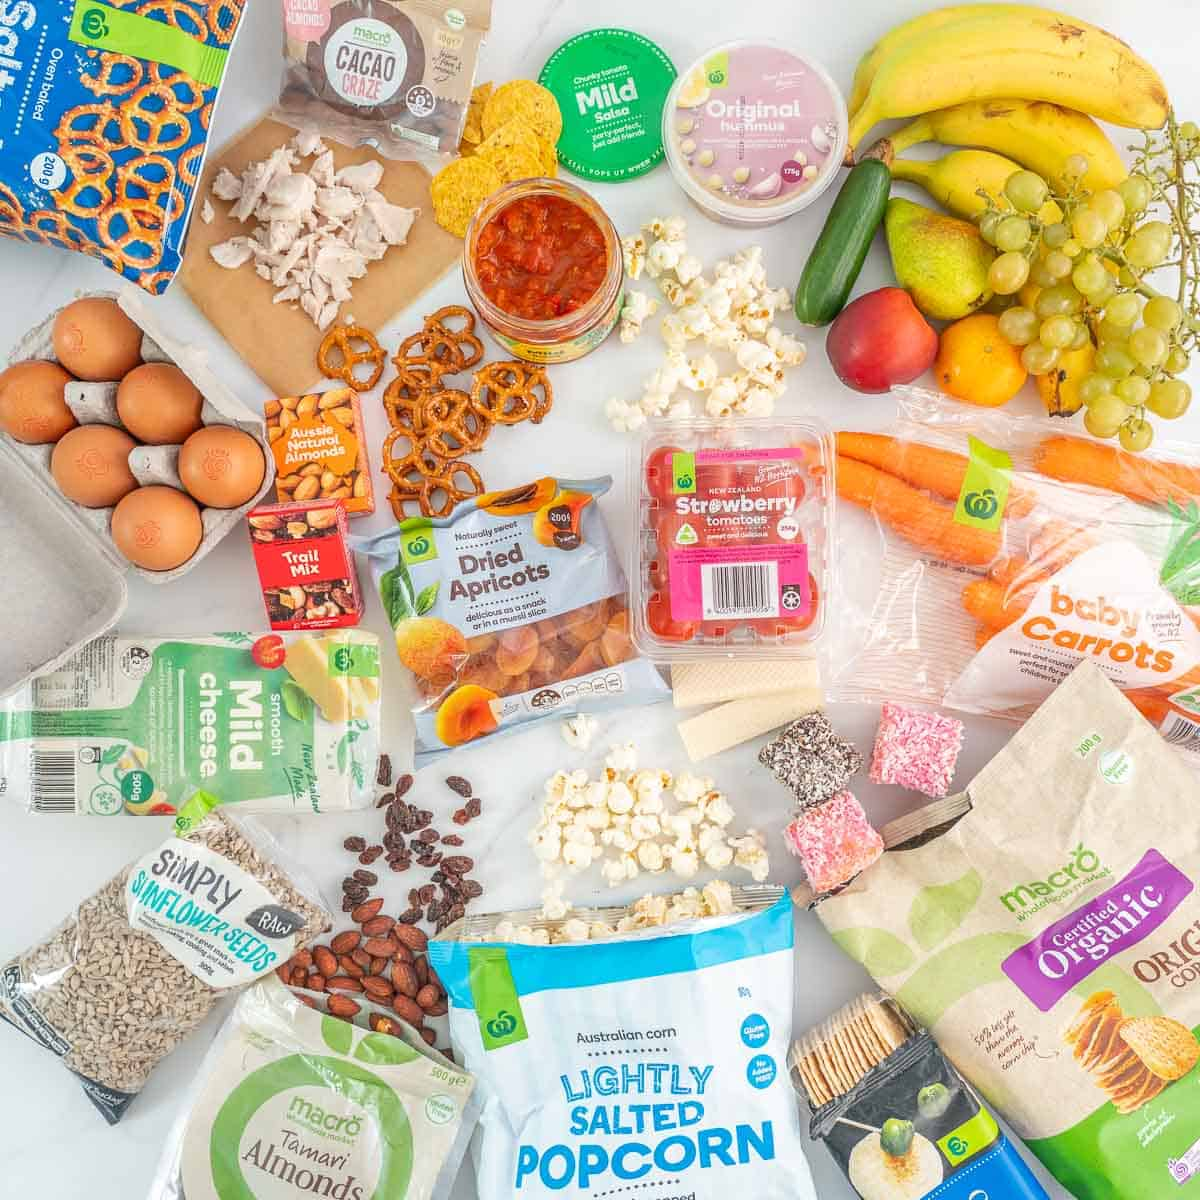 A collection of lunch box snacks you can grab at a supermarket laid out on a bench.